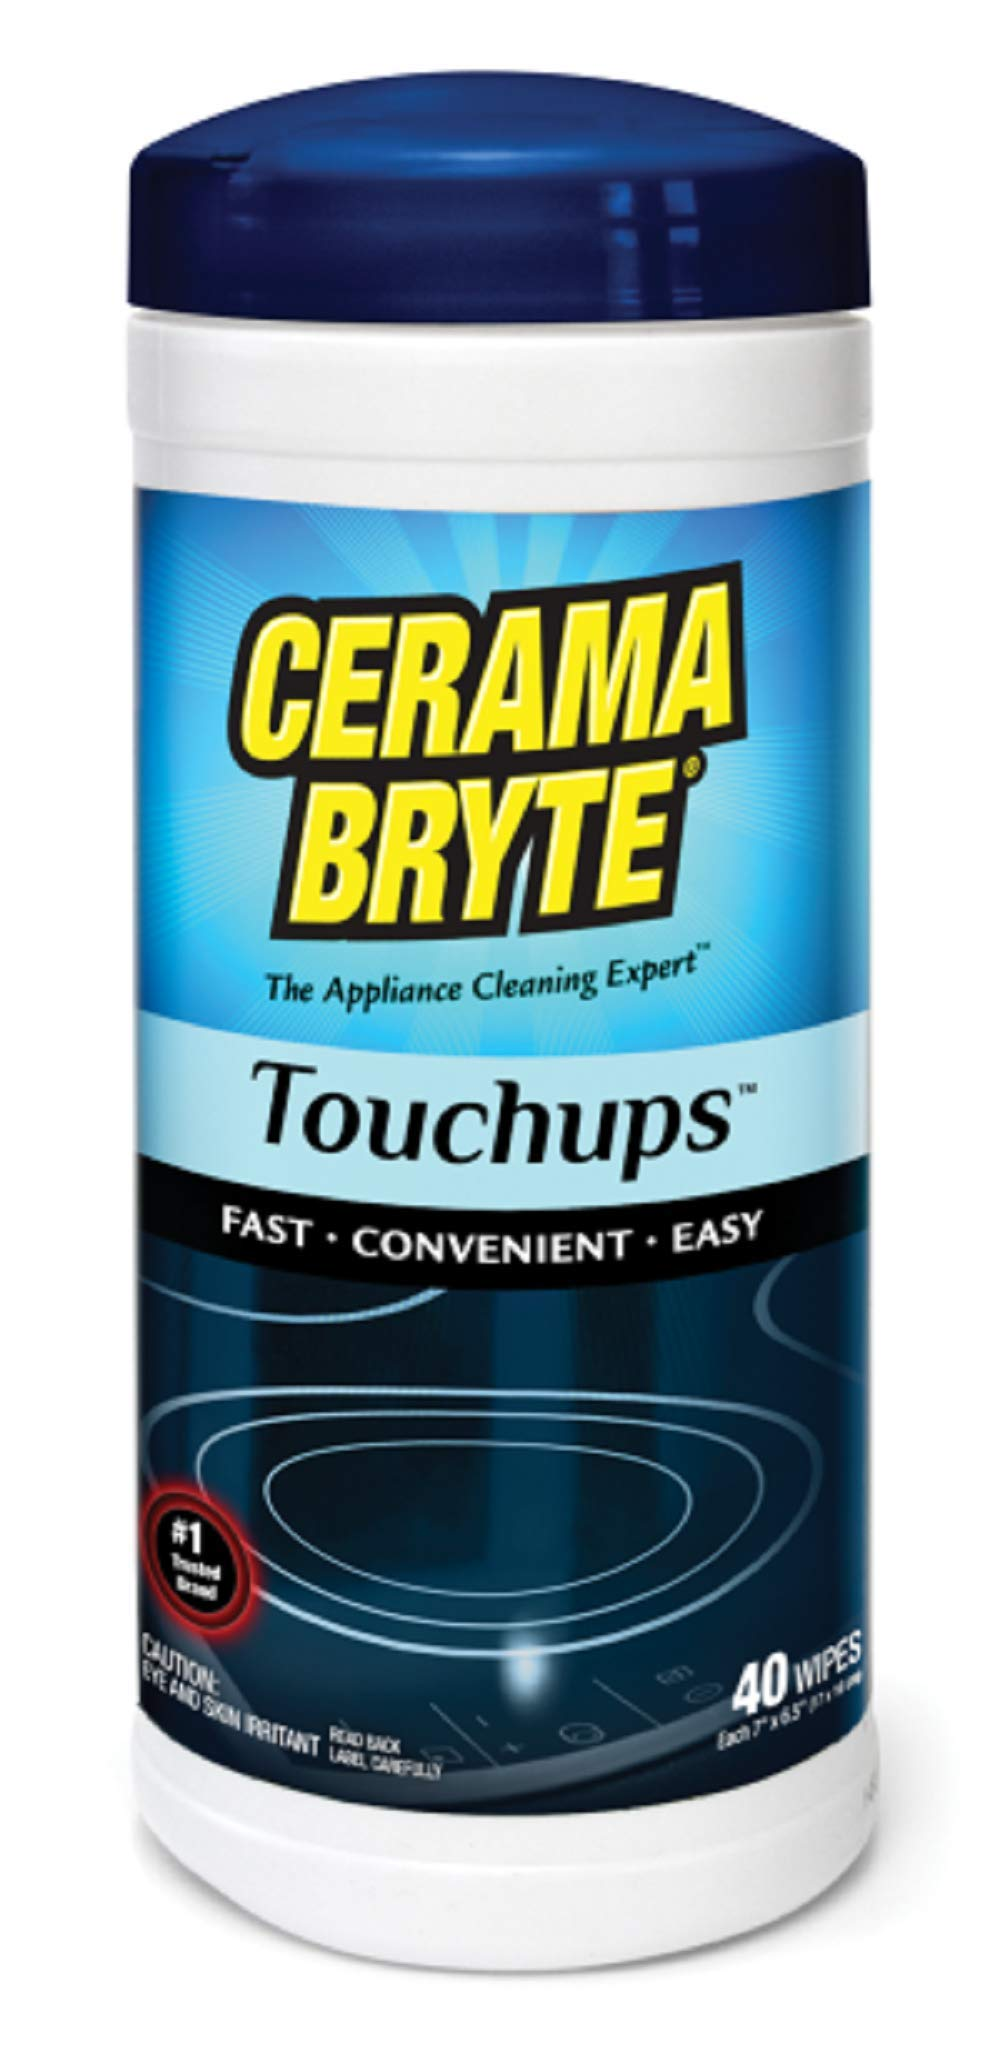 (2 Pack) Cerama Bryte Touchups Wipes Ceramic Cooktop Cleaner, 2 x 40-ct (Original Version) by Cerama Bryte (Image #1)